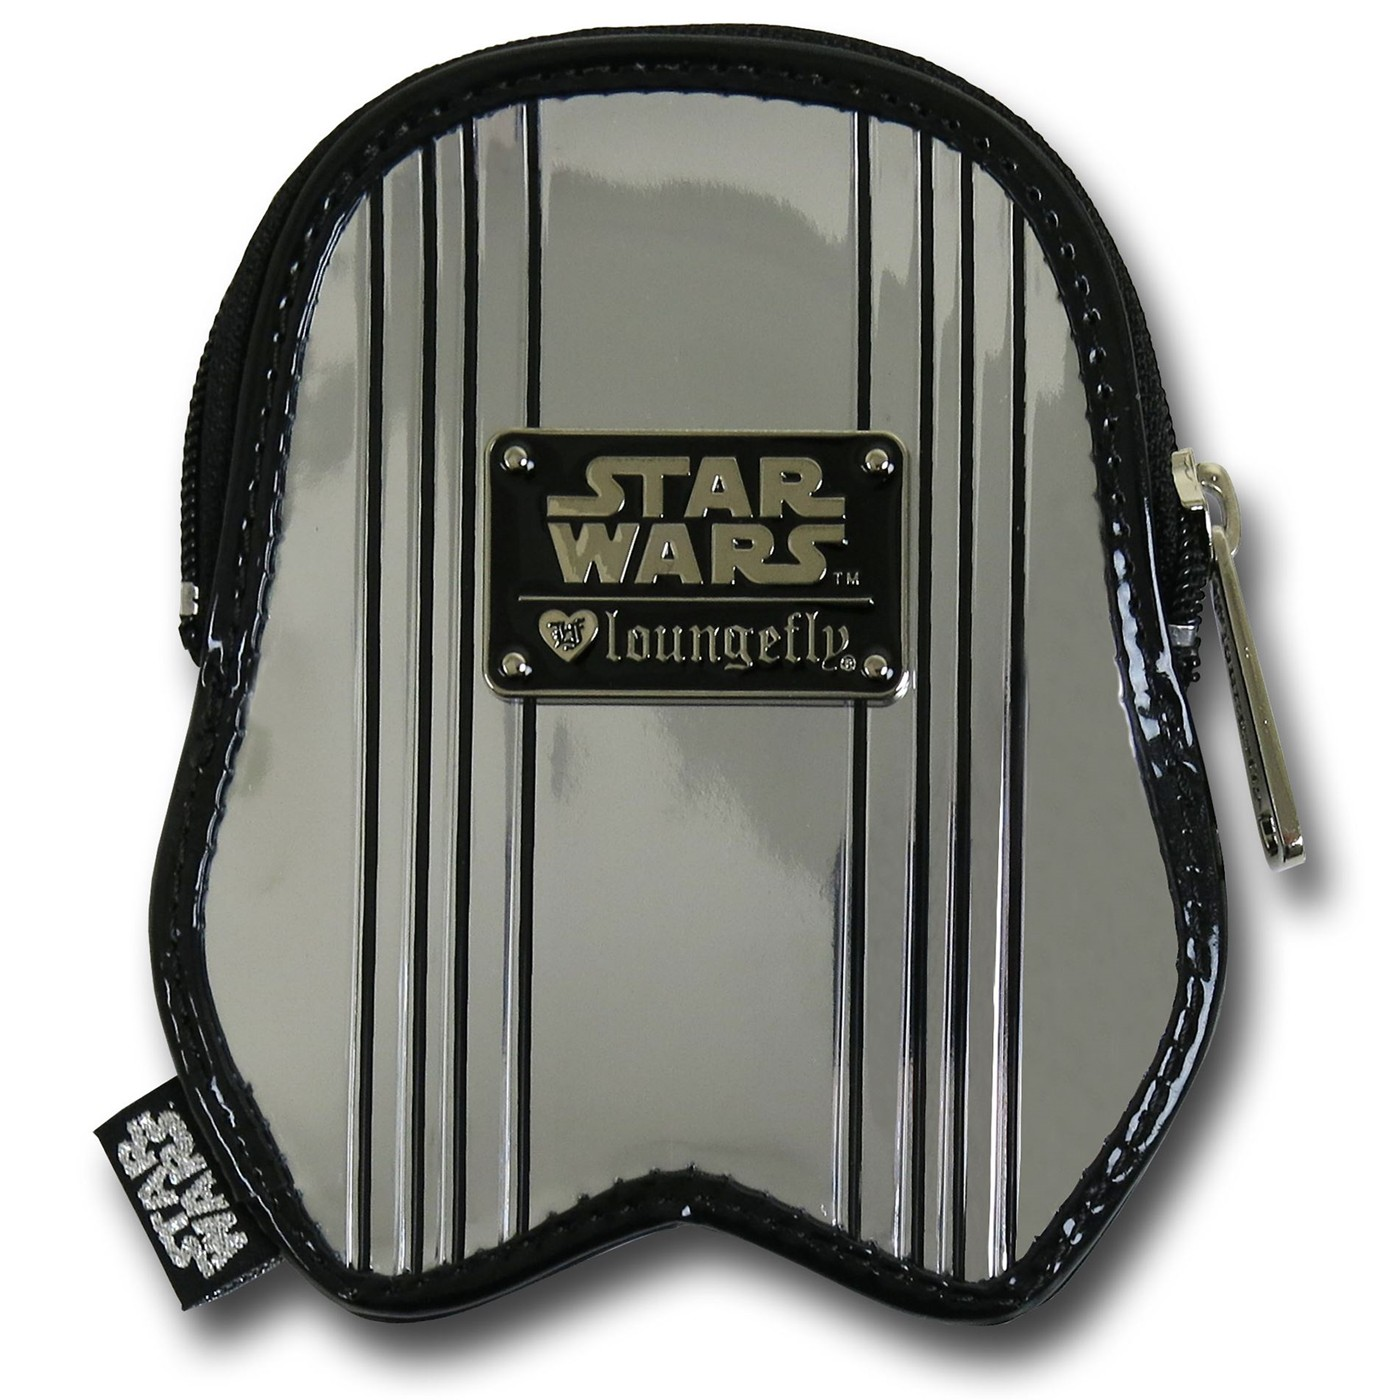 Star Wars Force Awakens Captain Phasma Coin Purse